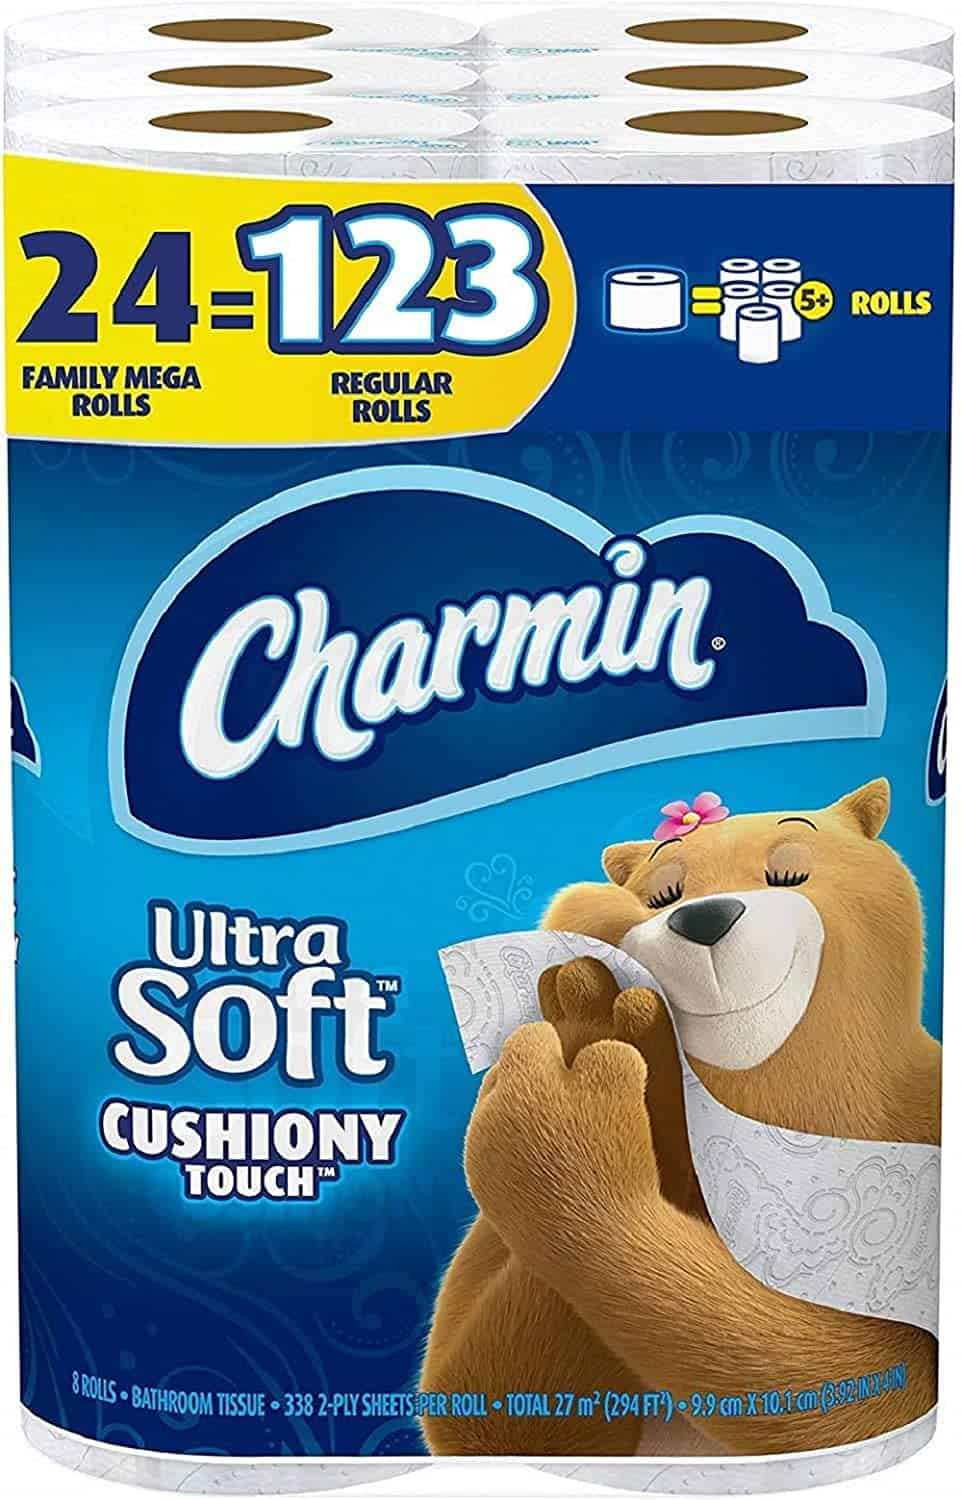 Charmin Soft Cushiony Touch Toilet Paper